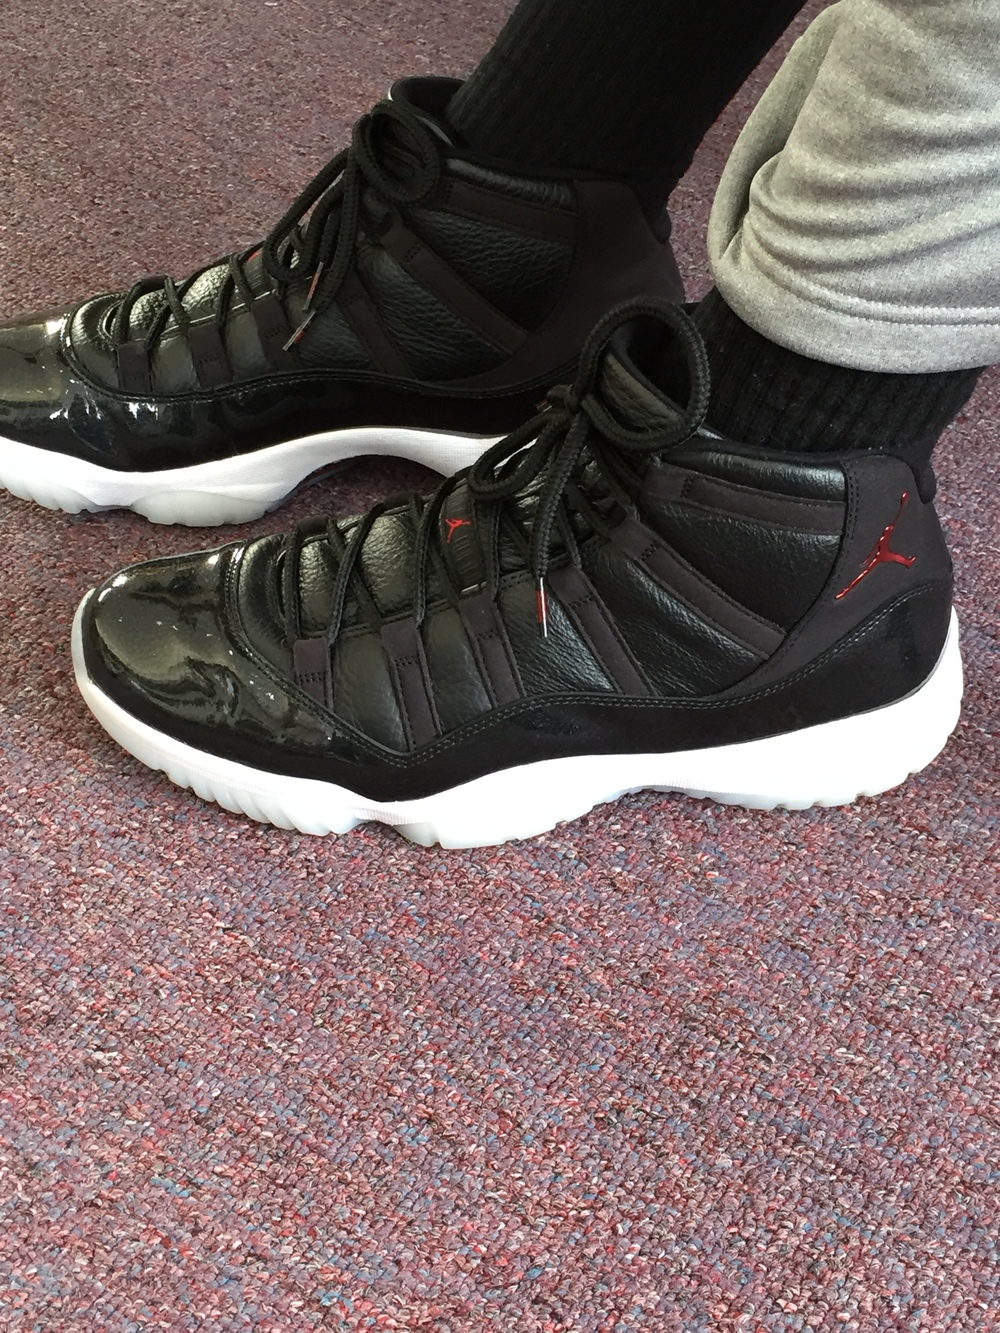 This specific colorway is known as the 72-10. This is because the NBA season of 1996 to 1997 saw Michael Jordan, wearing the Air Jordan 11, and the Chicago Bulls made history with the best season record of all-time at 72-10. They would also win the NBA Finals that year making this shoe and this commemorative colorway special to not only shoe fans, but Bulls fans.